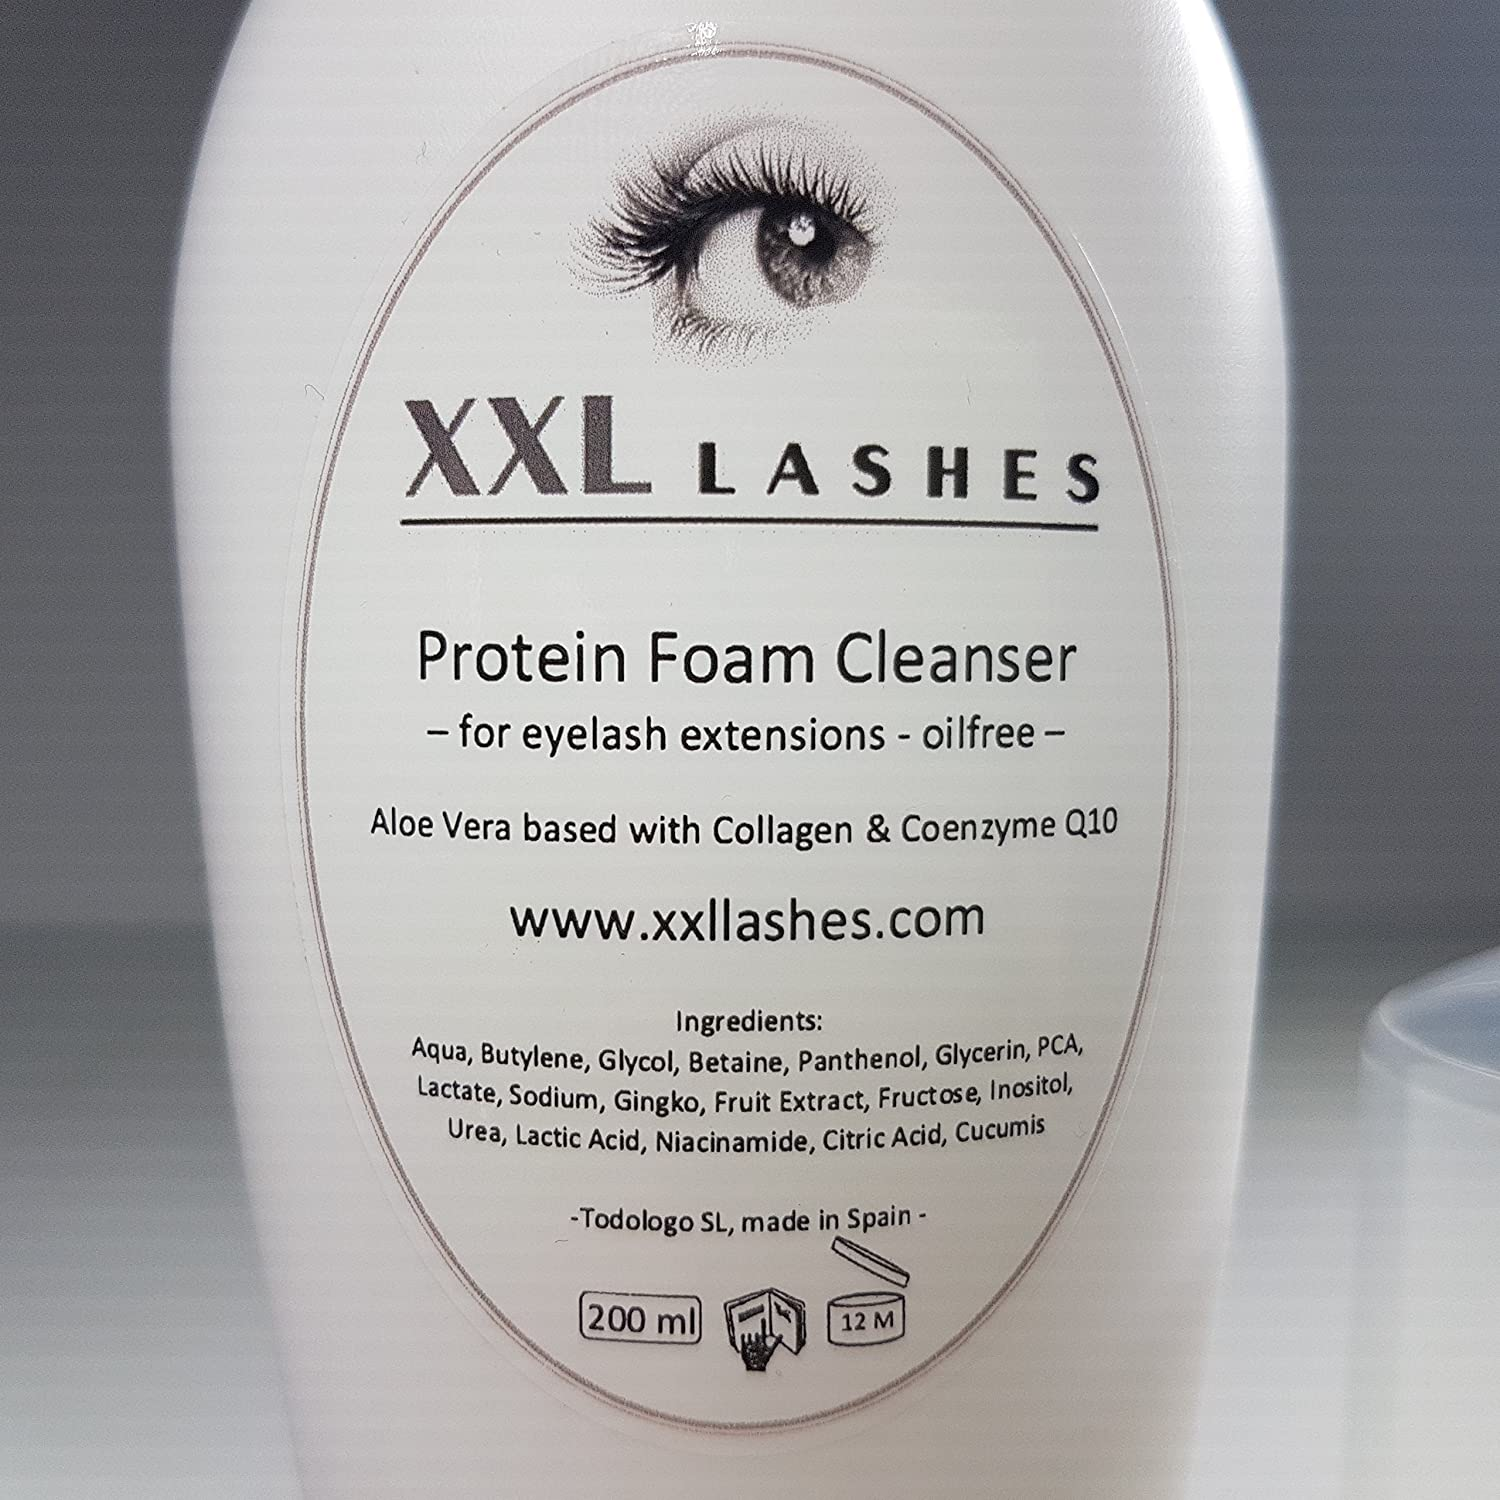 c28861a58ce XXL Lashes Foam Cleanser 200 ml for Eyelash Extensions free of oil and  alcohol, salon size: Amazon.co.uk: Beauty